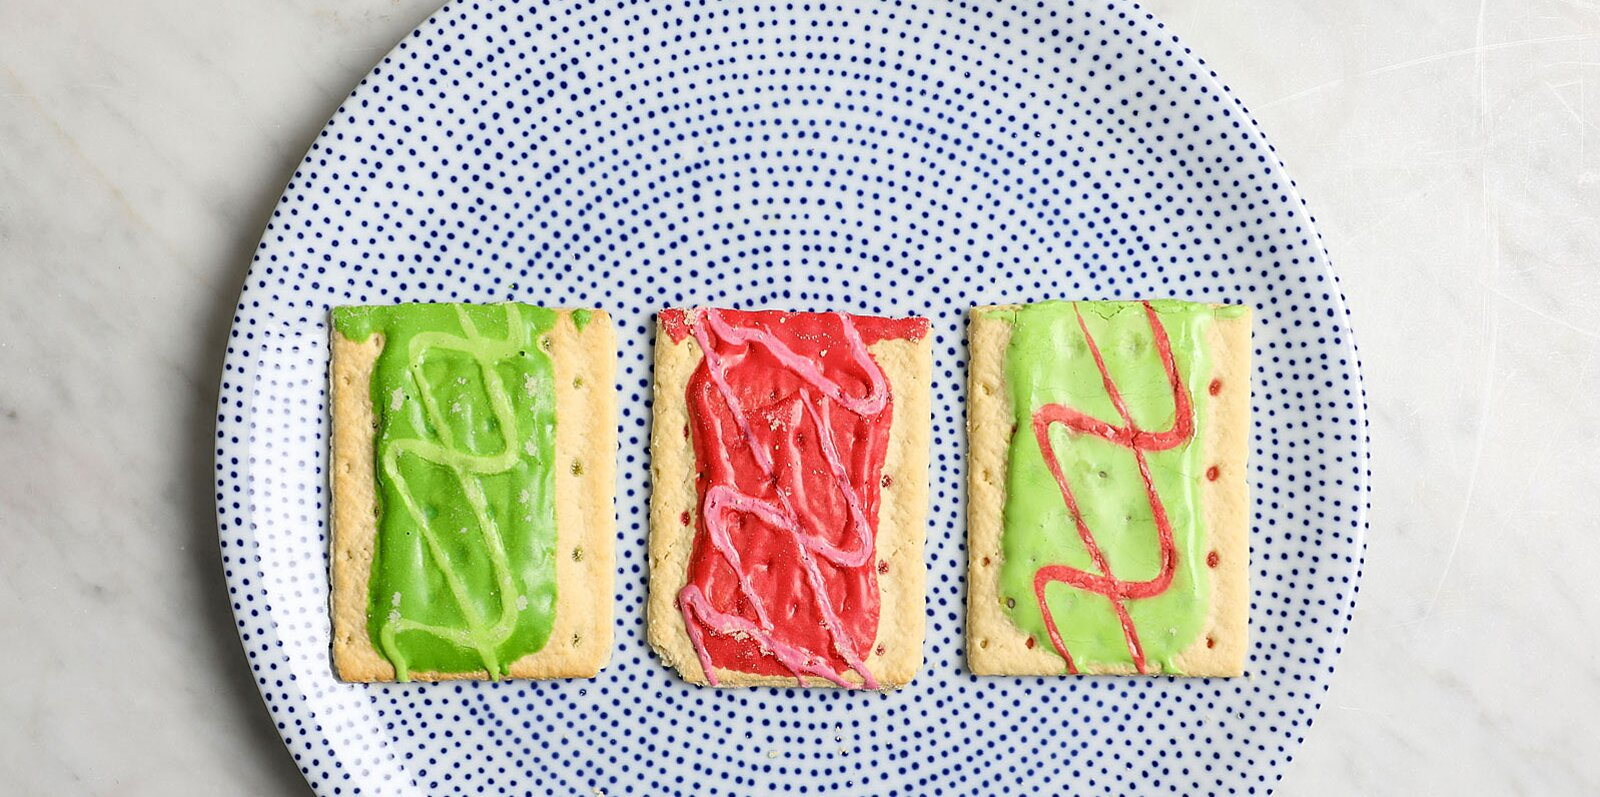 every pop tarts flavor taste tested and ranked